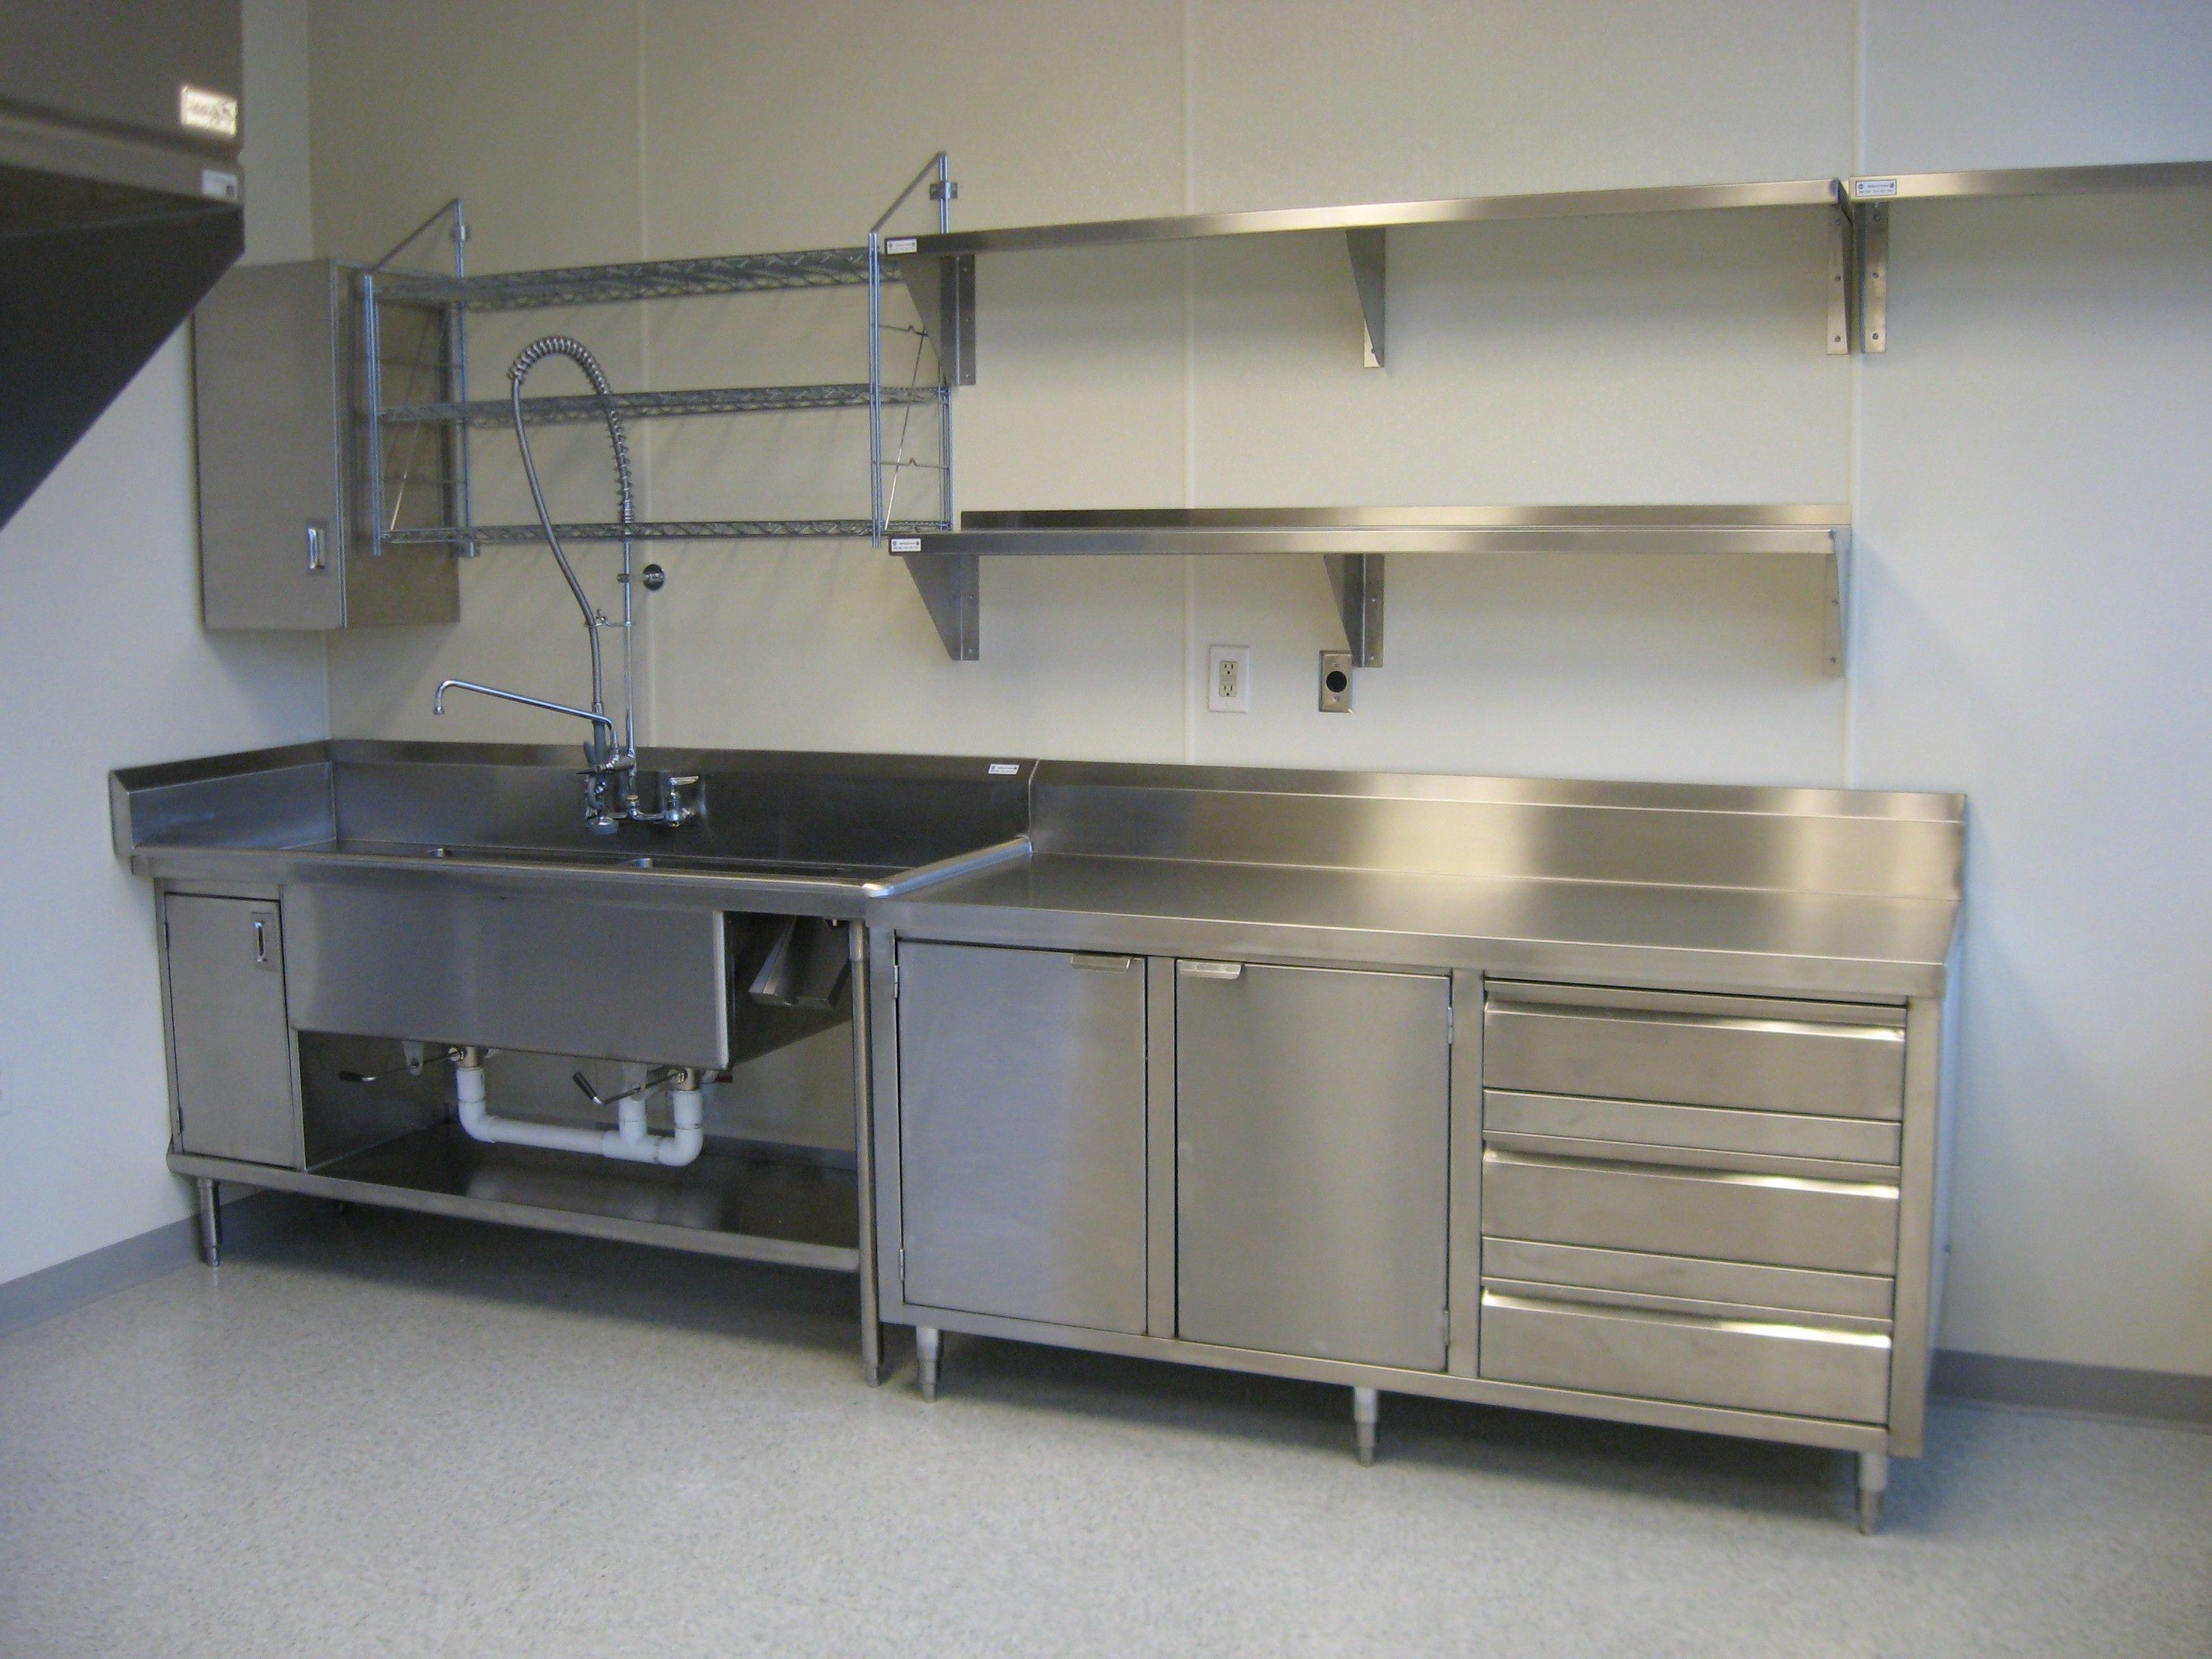 Shelving Stainless Steel Fitted Units Commercial Kitchen Large Catering Cucina S Steel Kitchen Cabinets Kitchen Cabinet Design Stainless Steel Kitchen Cabinets